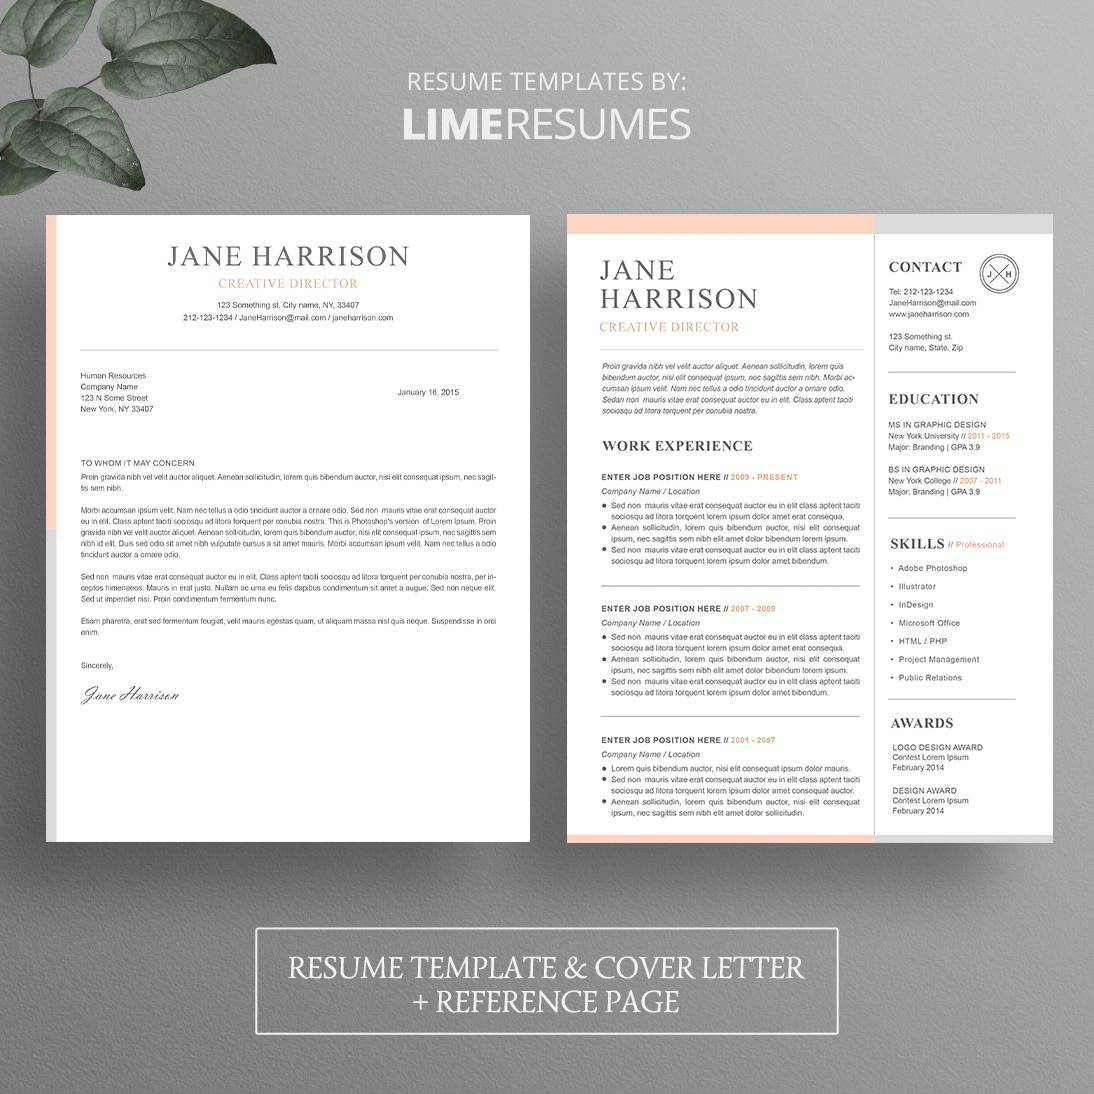 Is There A Resume Template In Microsoft Word 2007 Resume Template Cover Letter Template For Word